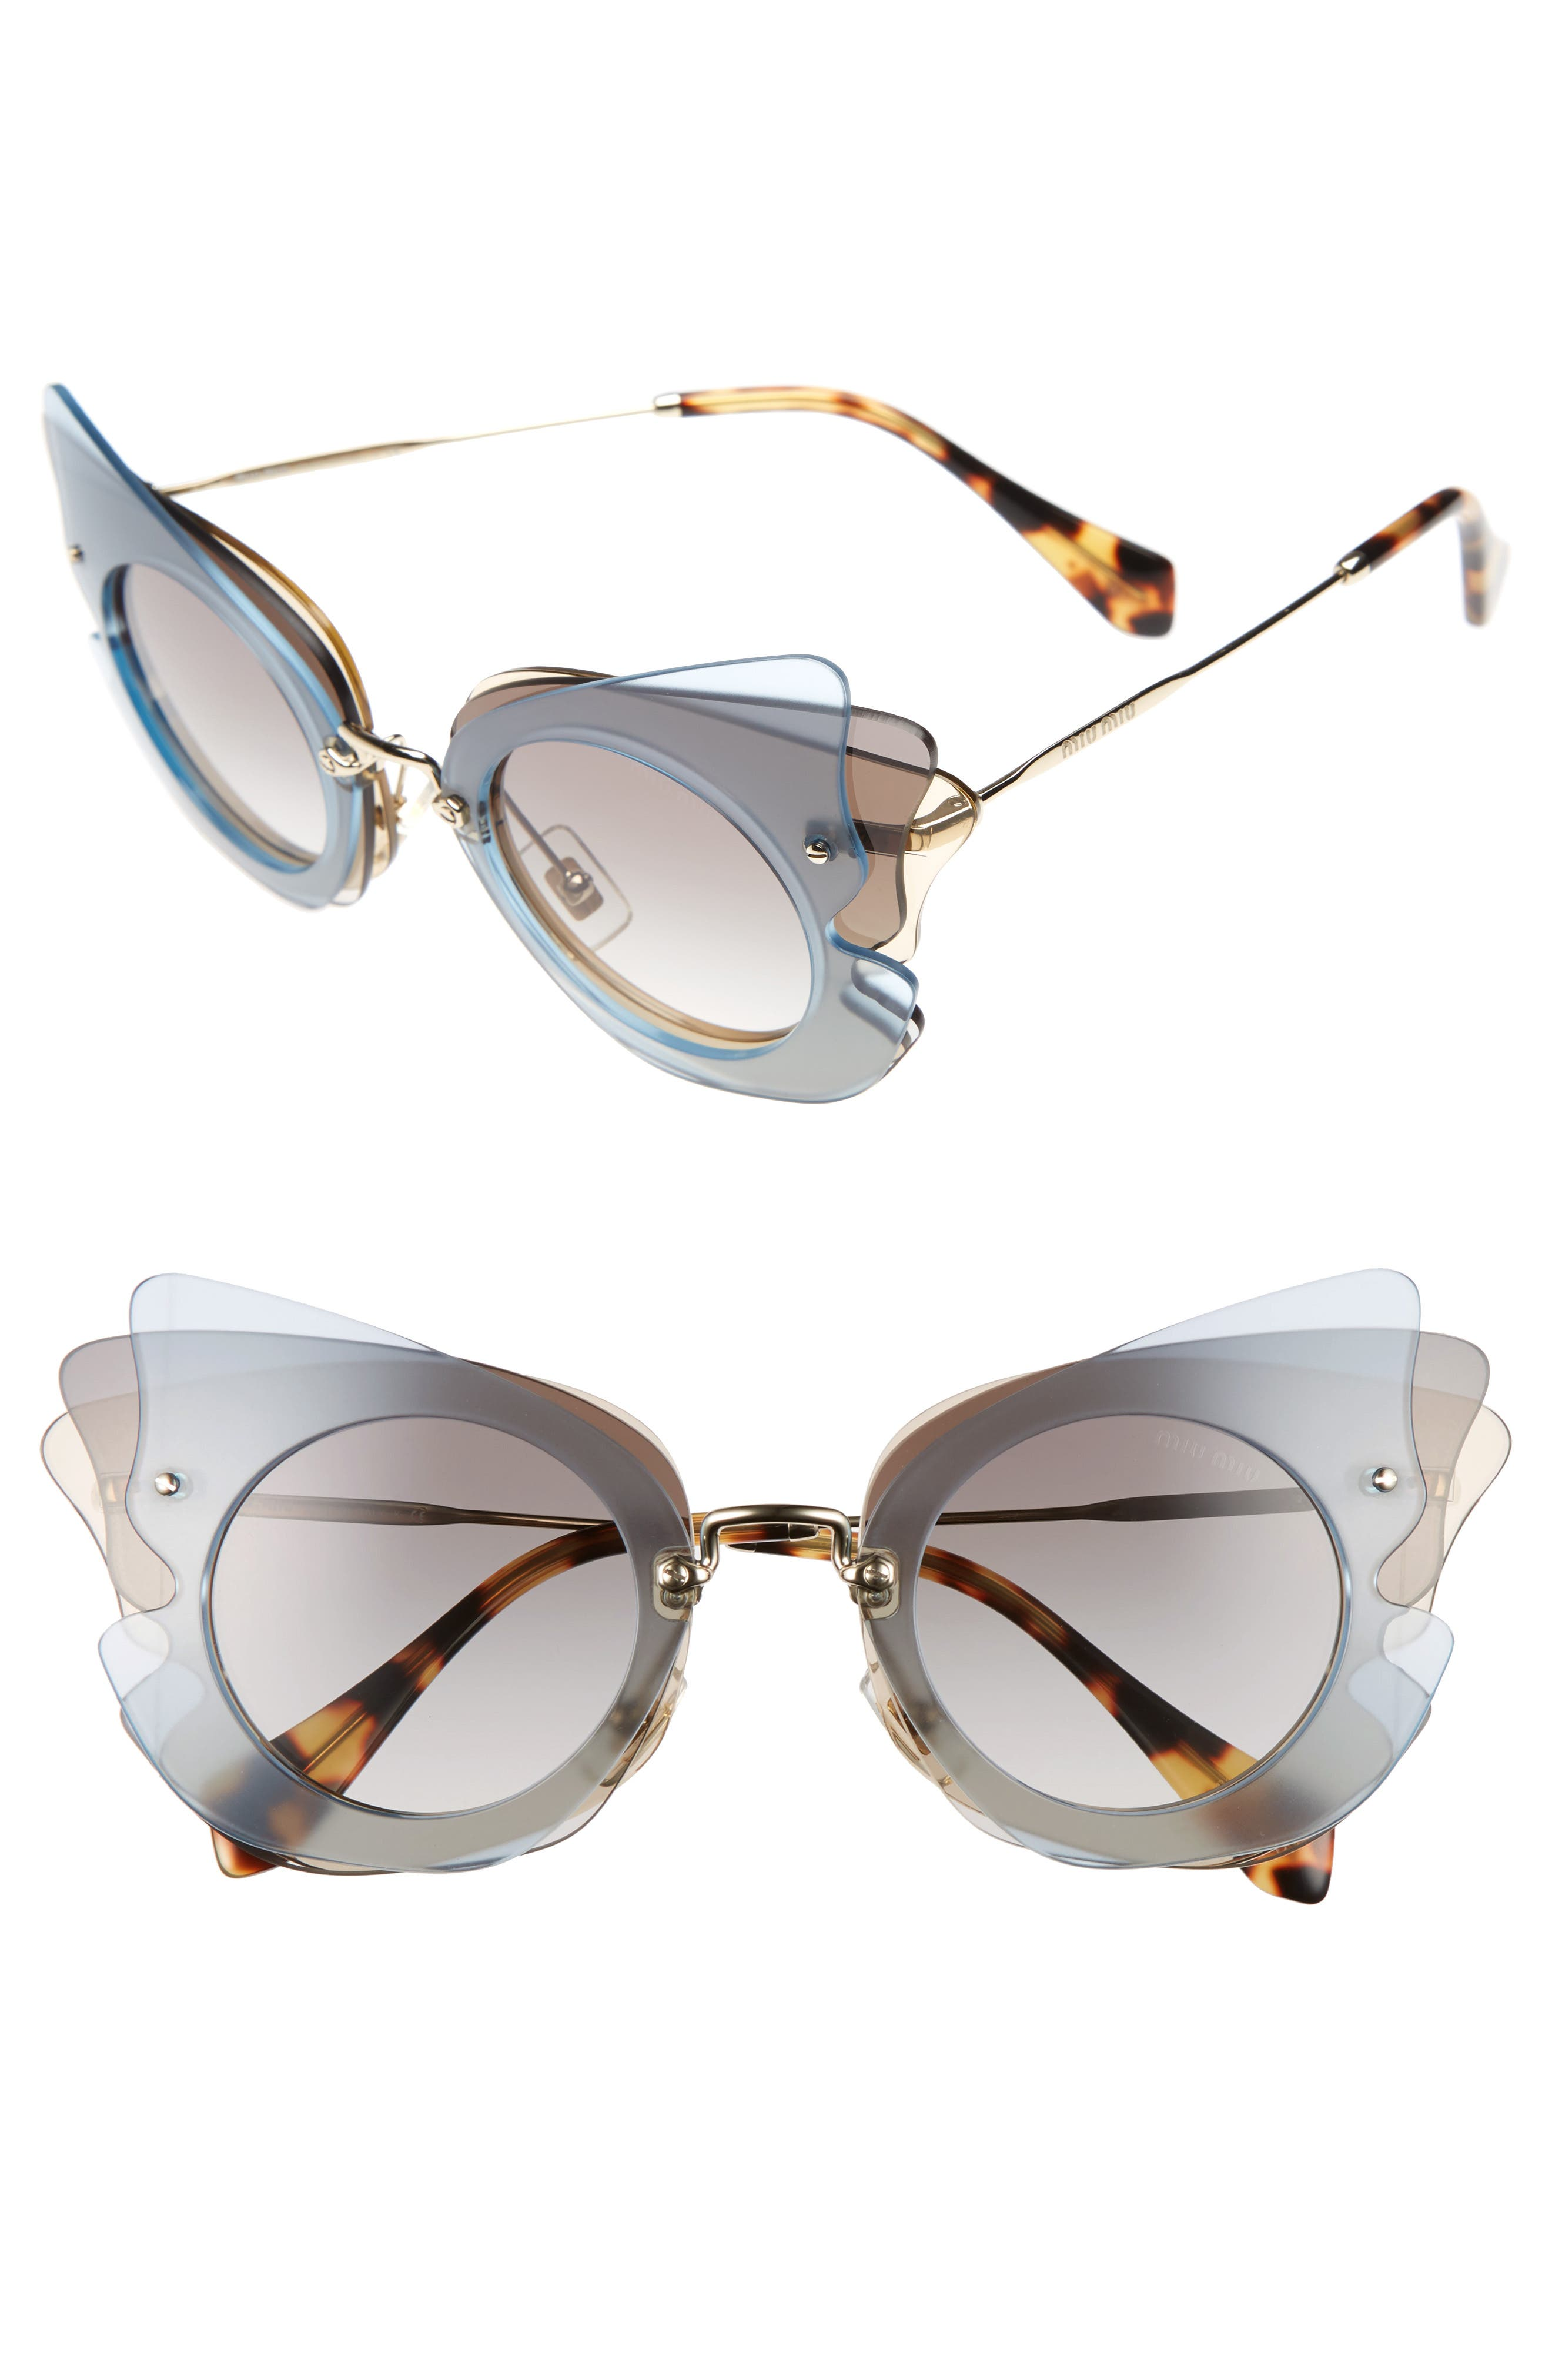 63mm Butterfly Sunglasses,                             Main thumbnail 1, color,                             710